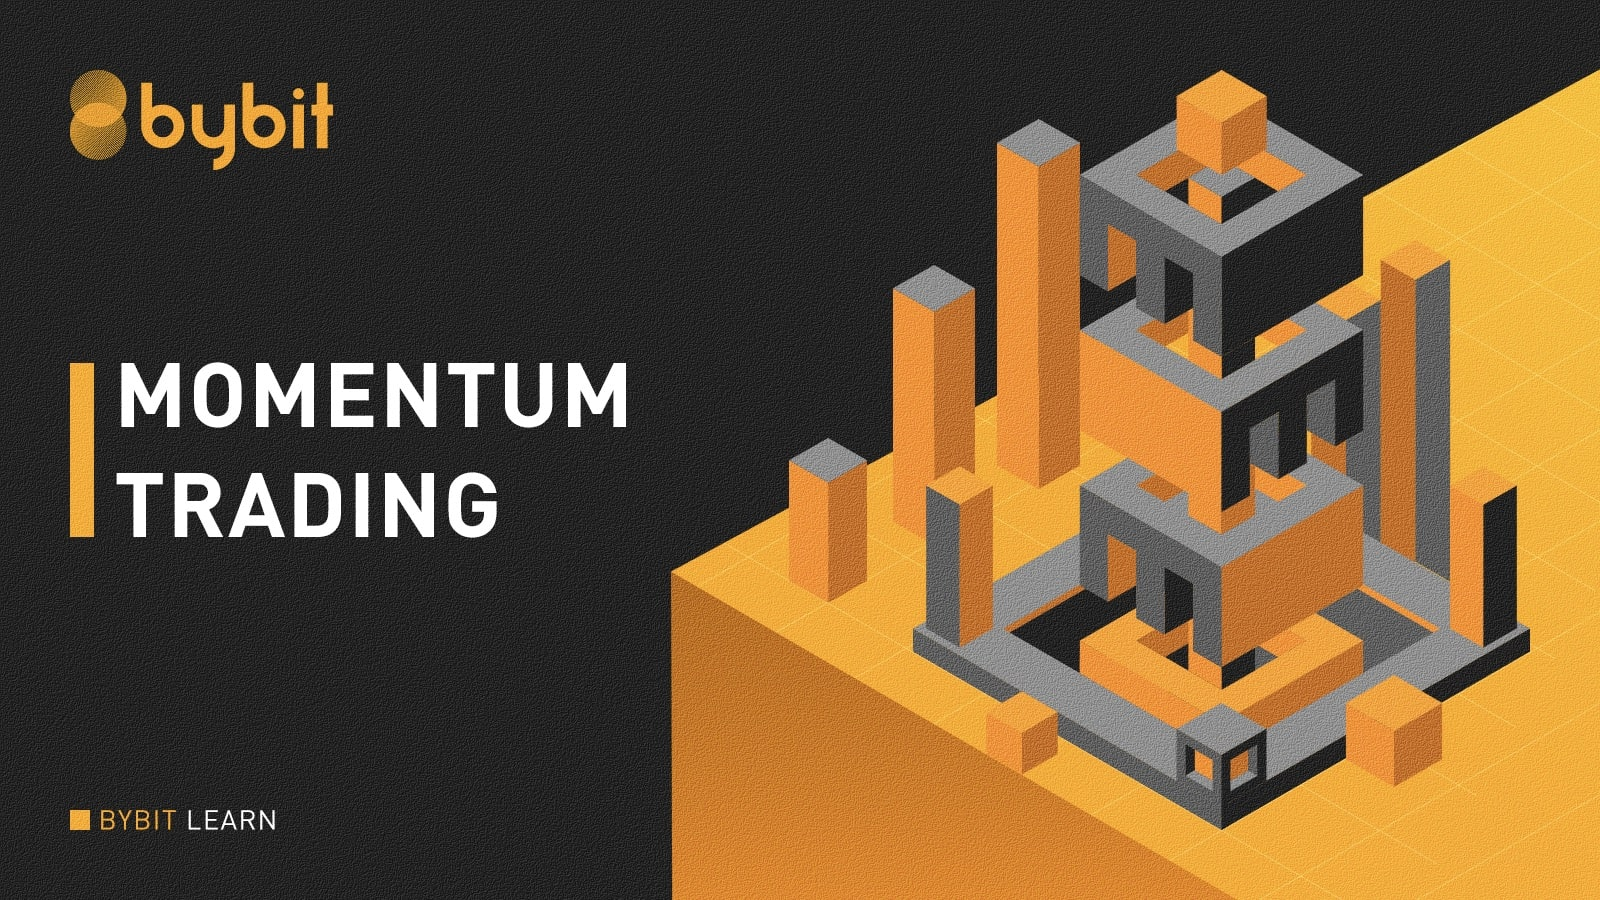 What is Momentum Trading